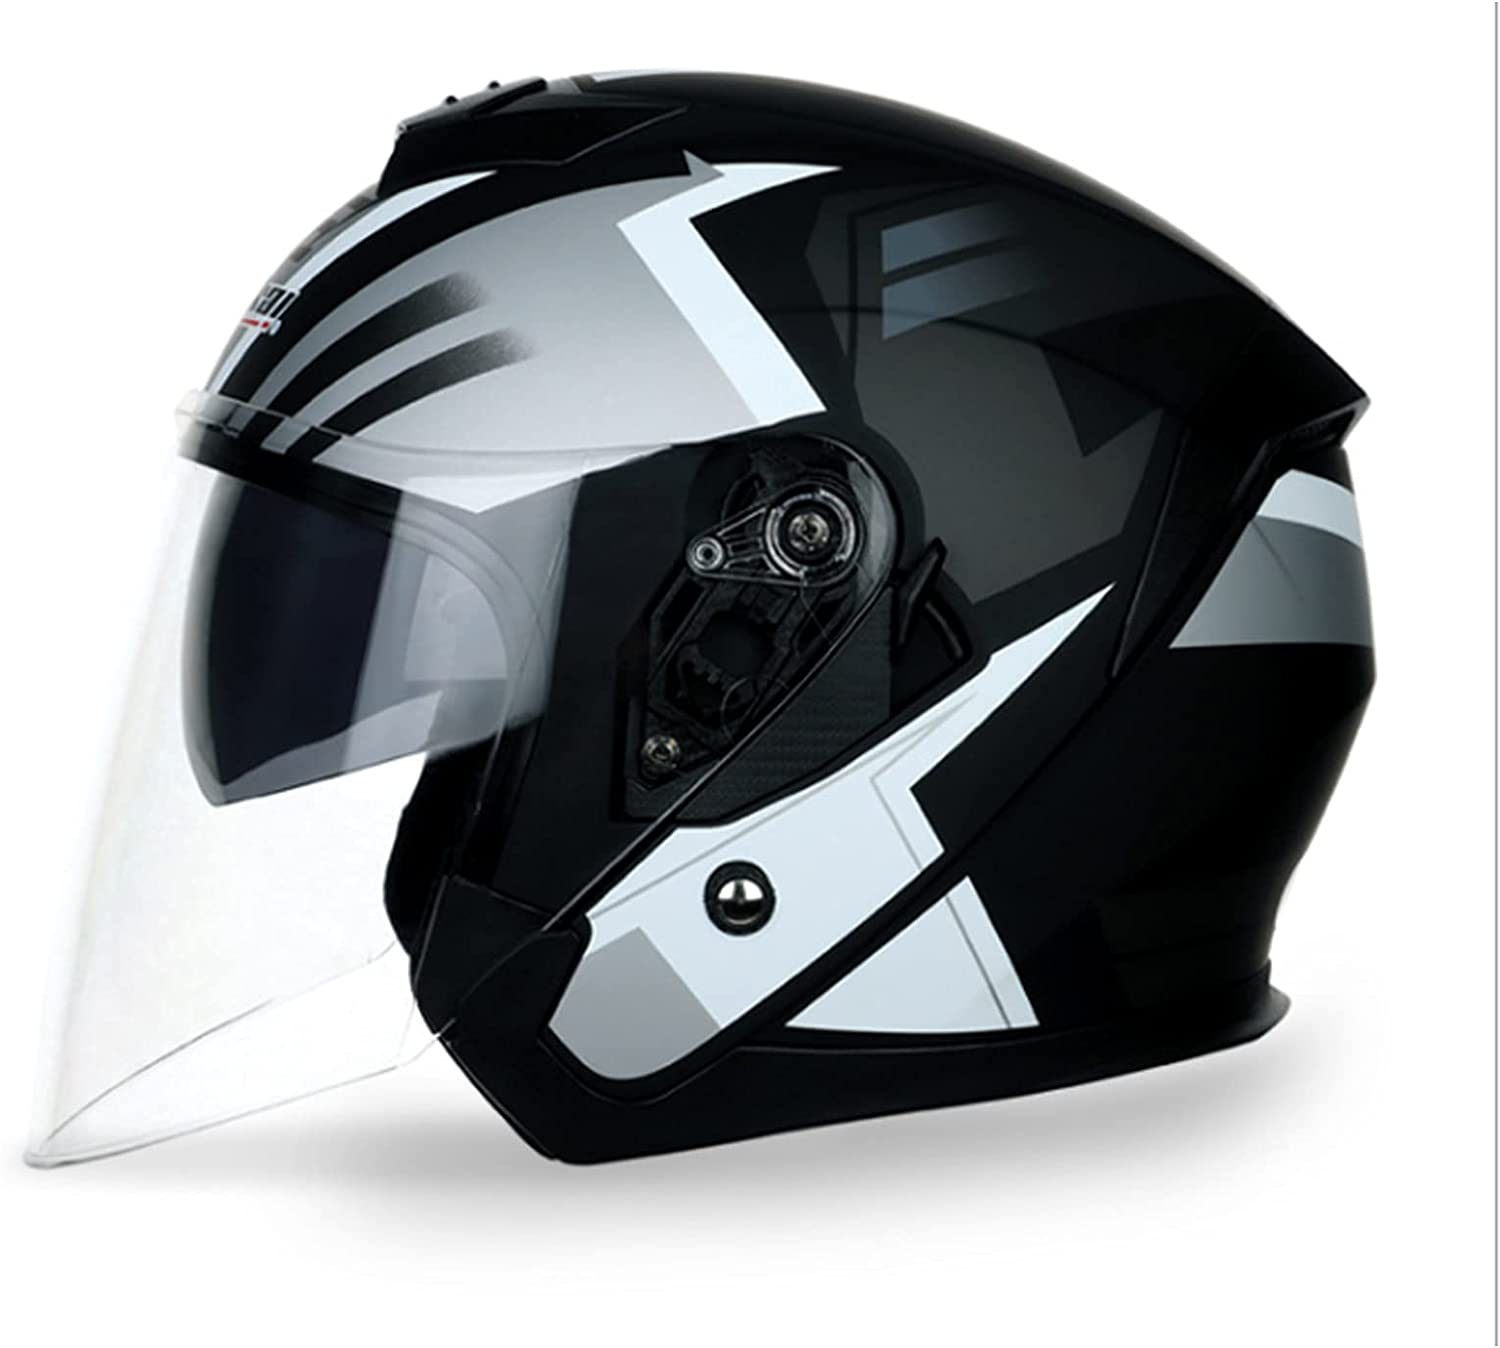 Special price Unisex-Adult Open-Face-Helmet-Style 3 4 Helmet S with Seasonal Wrap Introduction Motorcycle